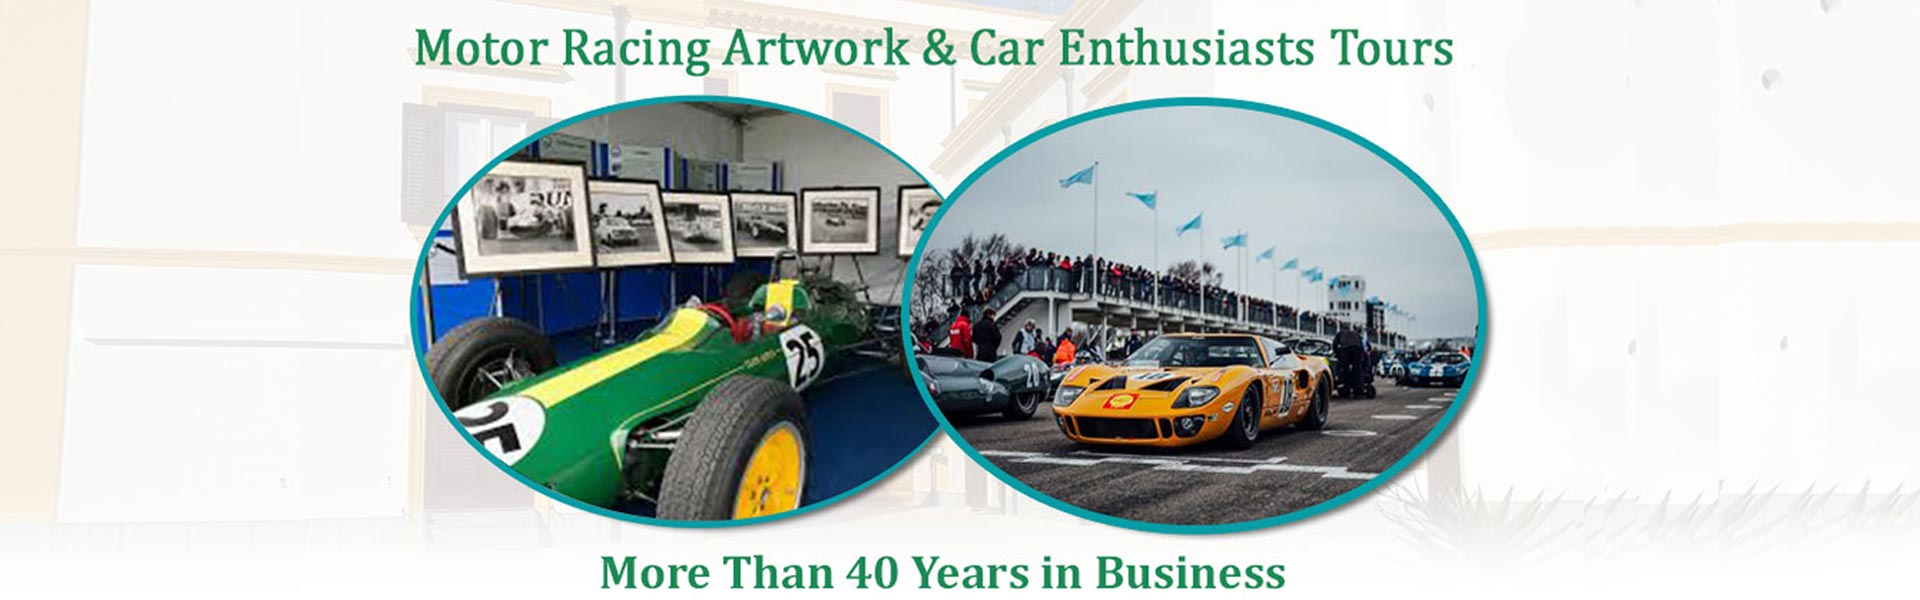 Collage of Racing Car and Racing Event